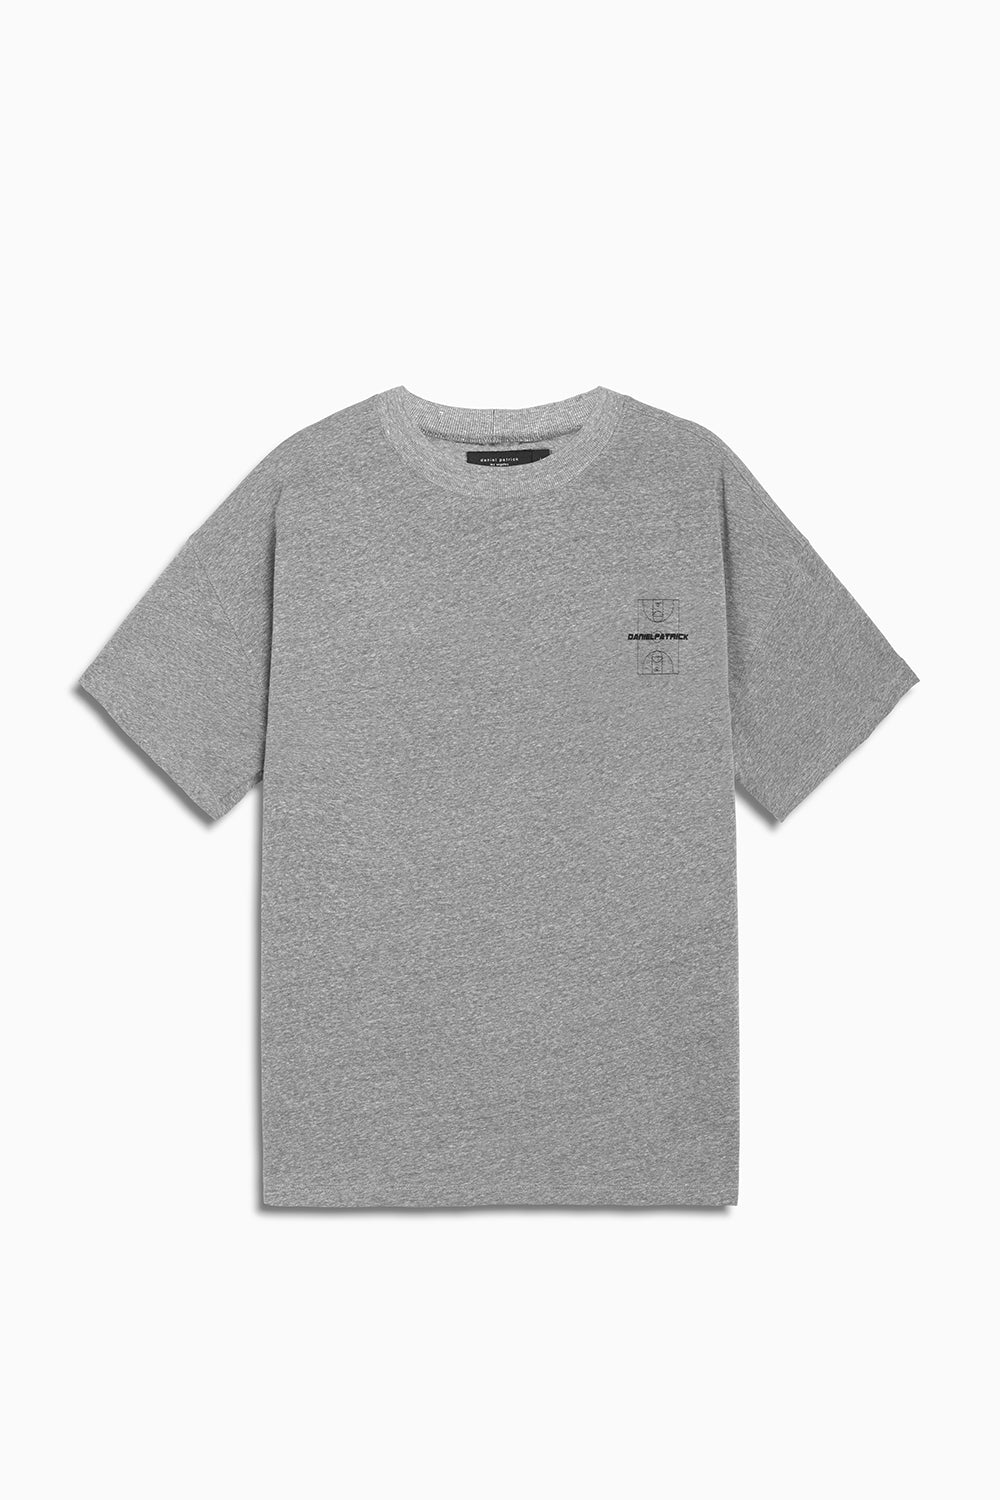 DP court tee in heather grey by daniel patrick